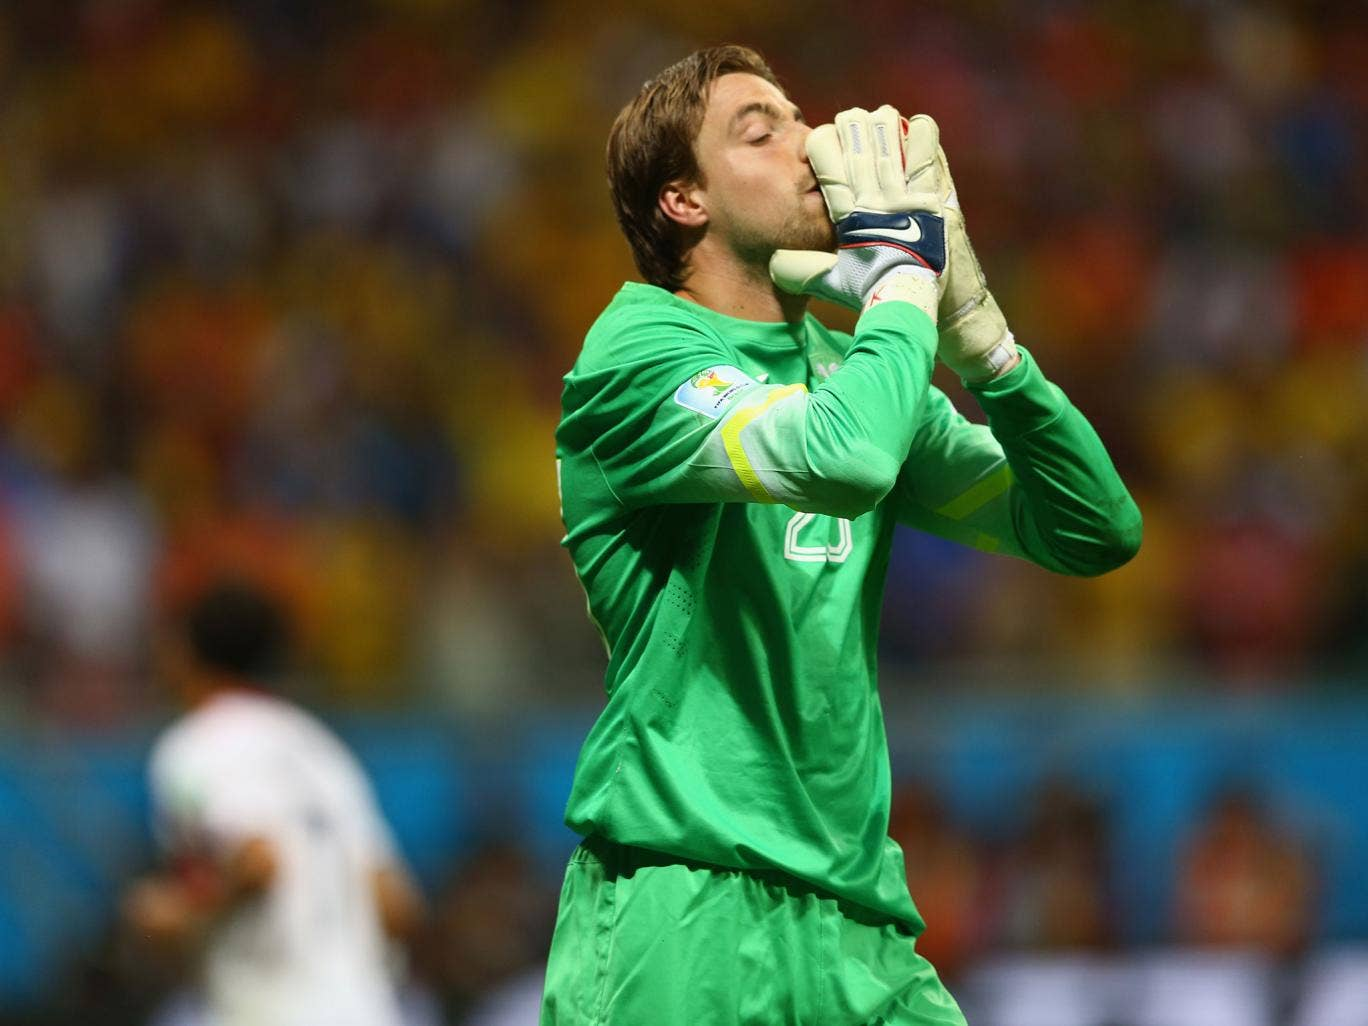 Netherlands' substitute goalkeeper Tim Krul celebrates after saving two penalties in the shootout victory over Costa Rica